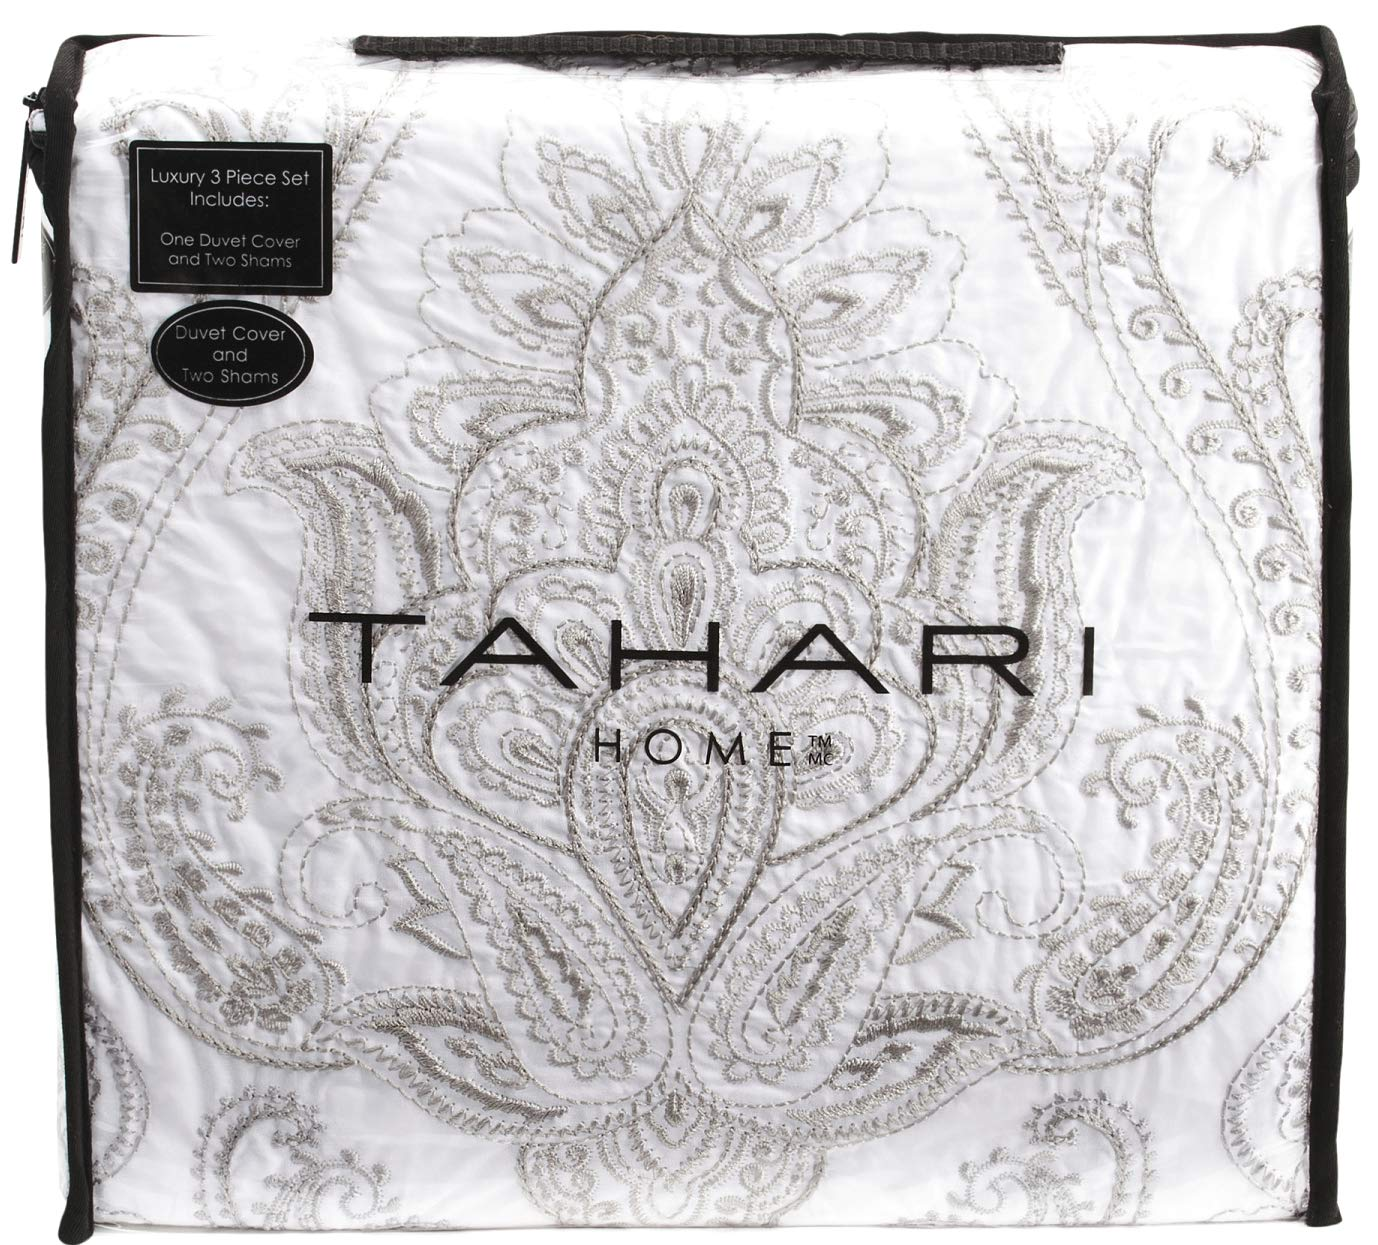 Tahari Home 100% Cotton Quilted Floral Damask 3pc Full Queen Duvet Cover Set Textured Stitching Embroidered Medallions (Silver, Queen)